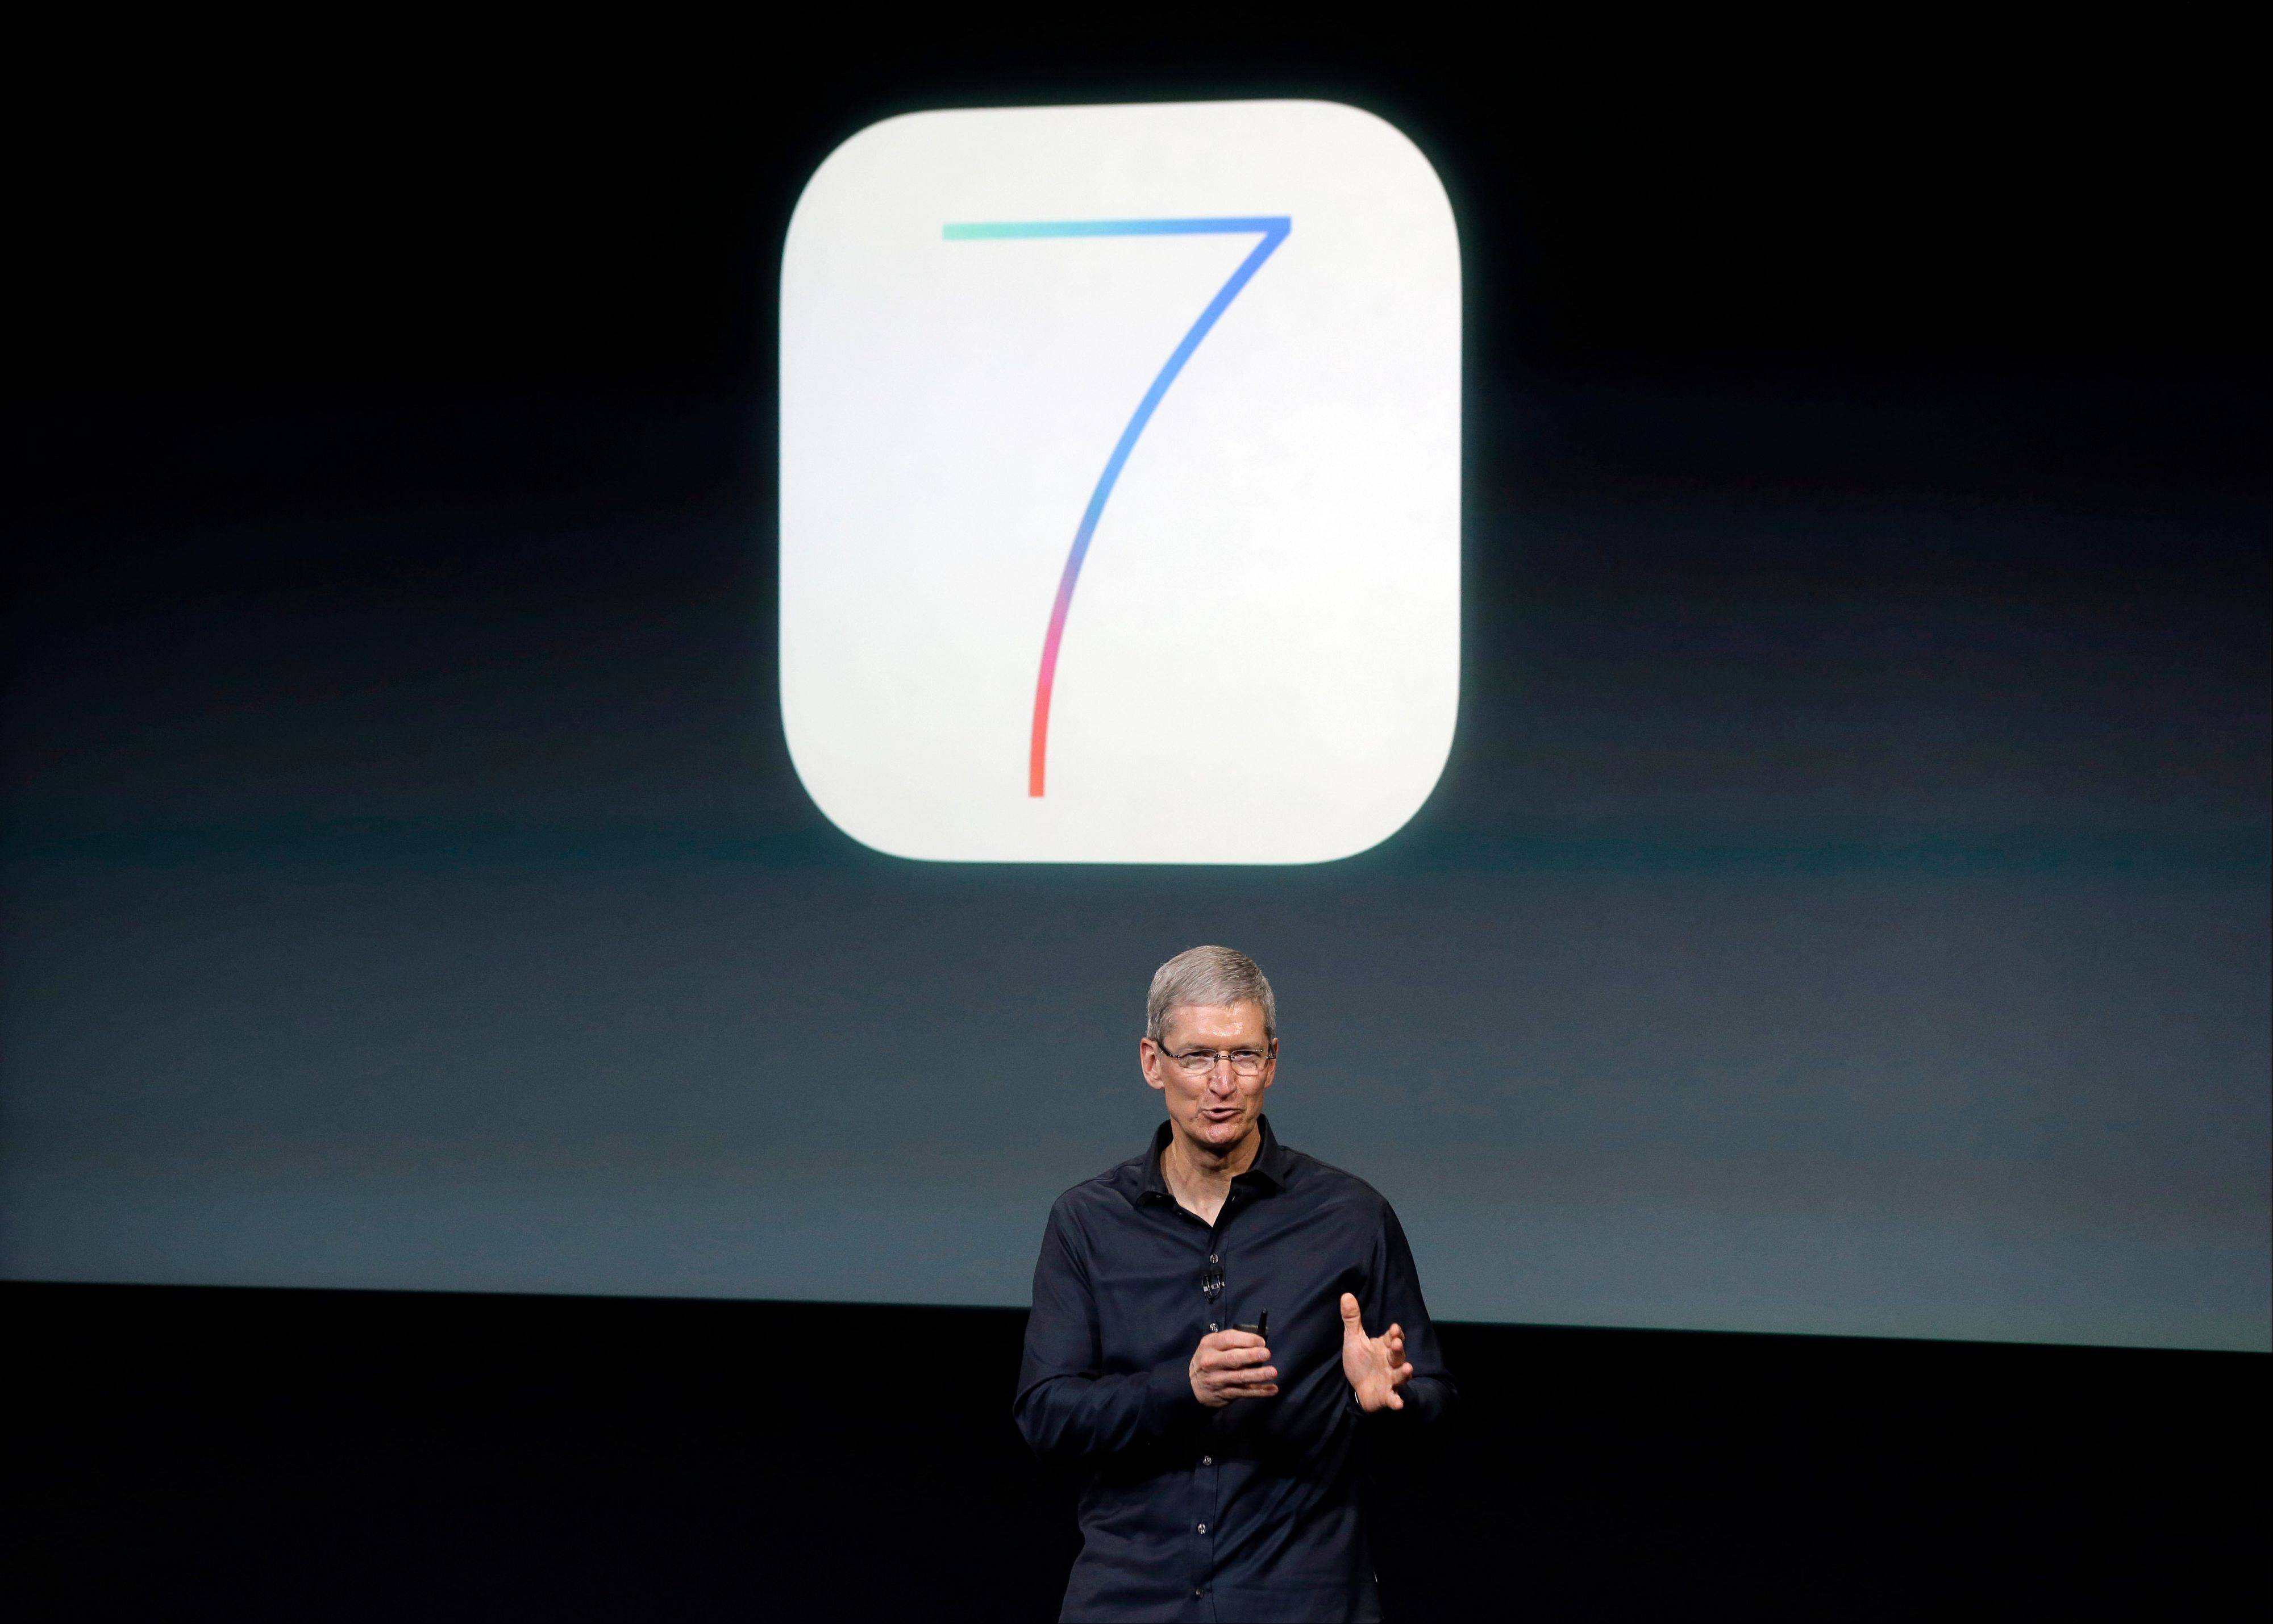 Tim Cook, CEO of Apple, speaks during the new product release in Cupertino, Calif., Tuesday, Sept. 10, 2013. Apple�s latest iPhones will come in a bevy of colors and two distinct designs, one made of plastic and the other that aims to be �the gold standard of smartphones and reads your fingerprint.